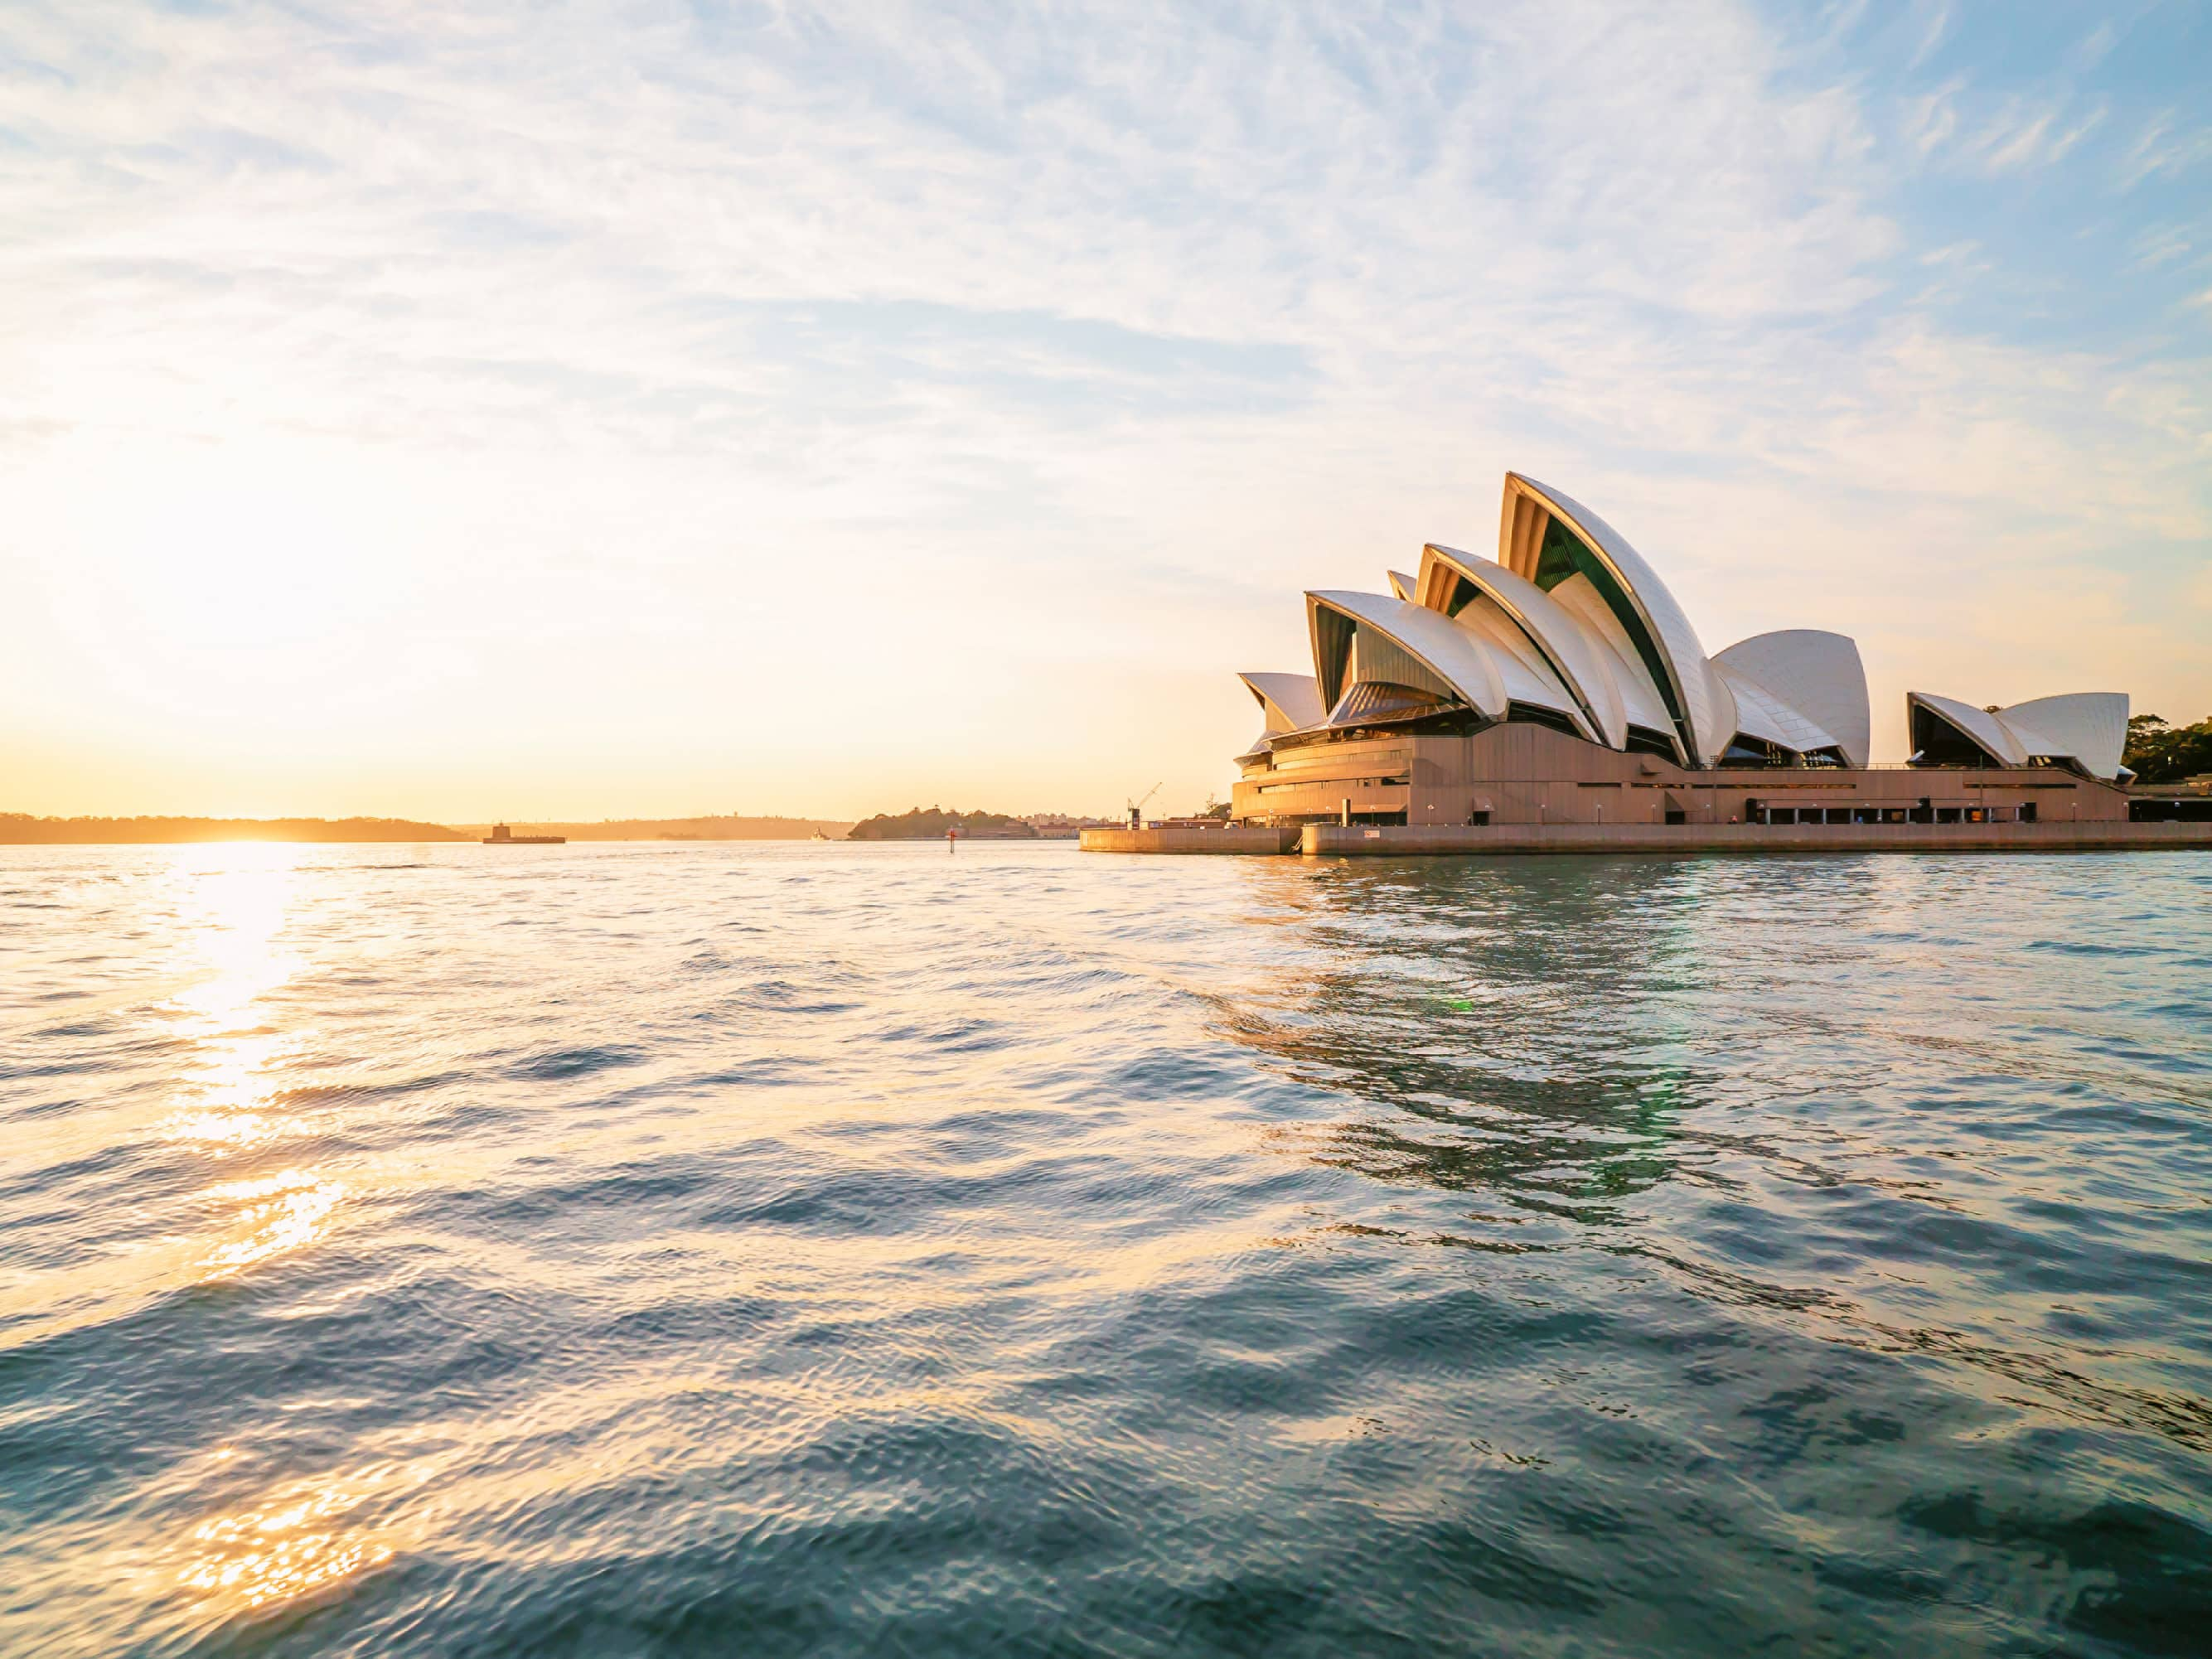 Go behind the scenes at Sydney's Opera House